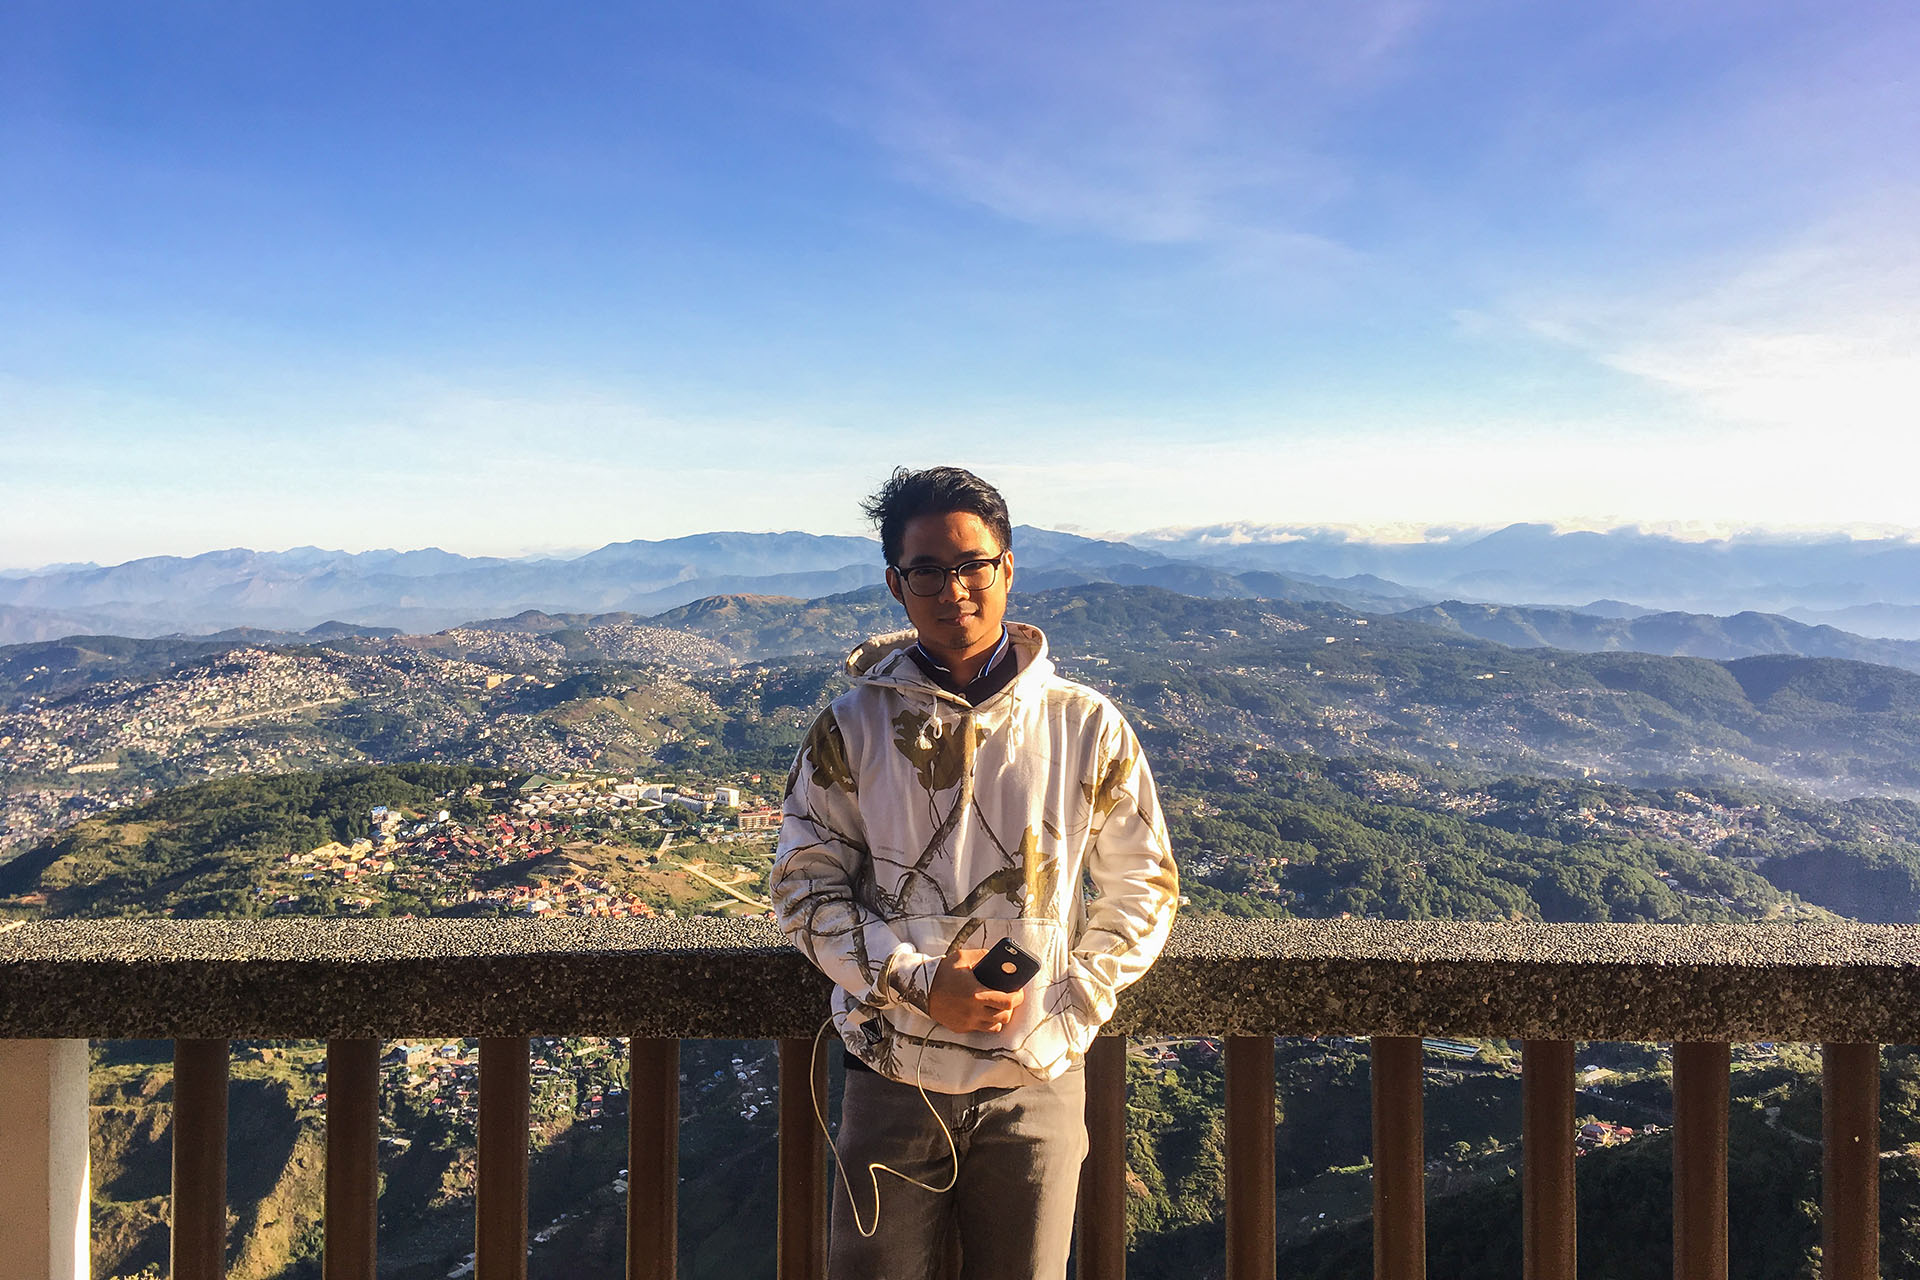 Photo taken in Cafe in the Sky Baguio City